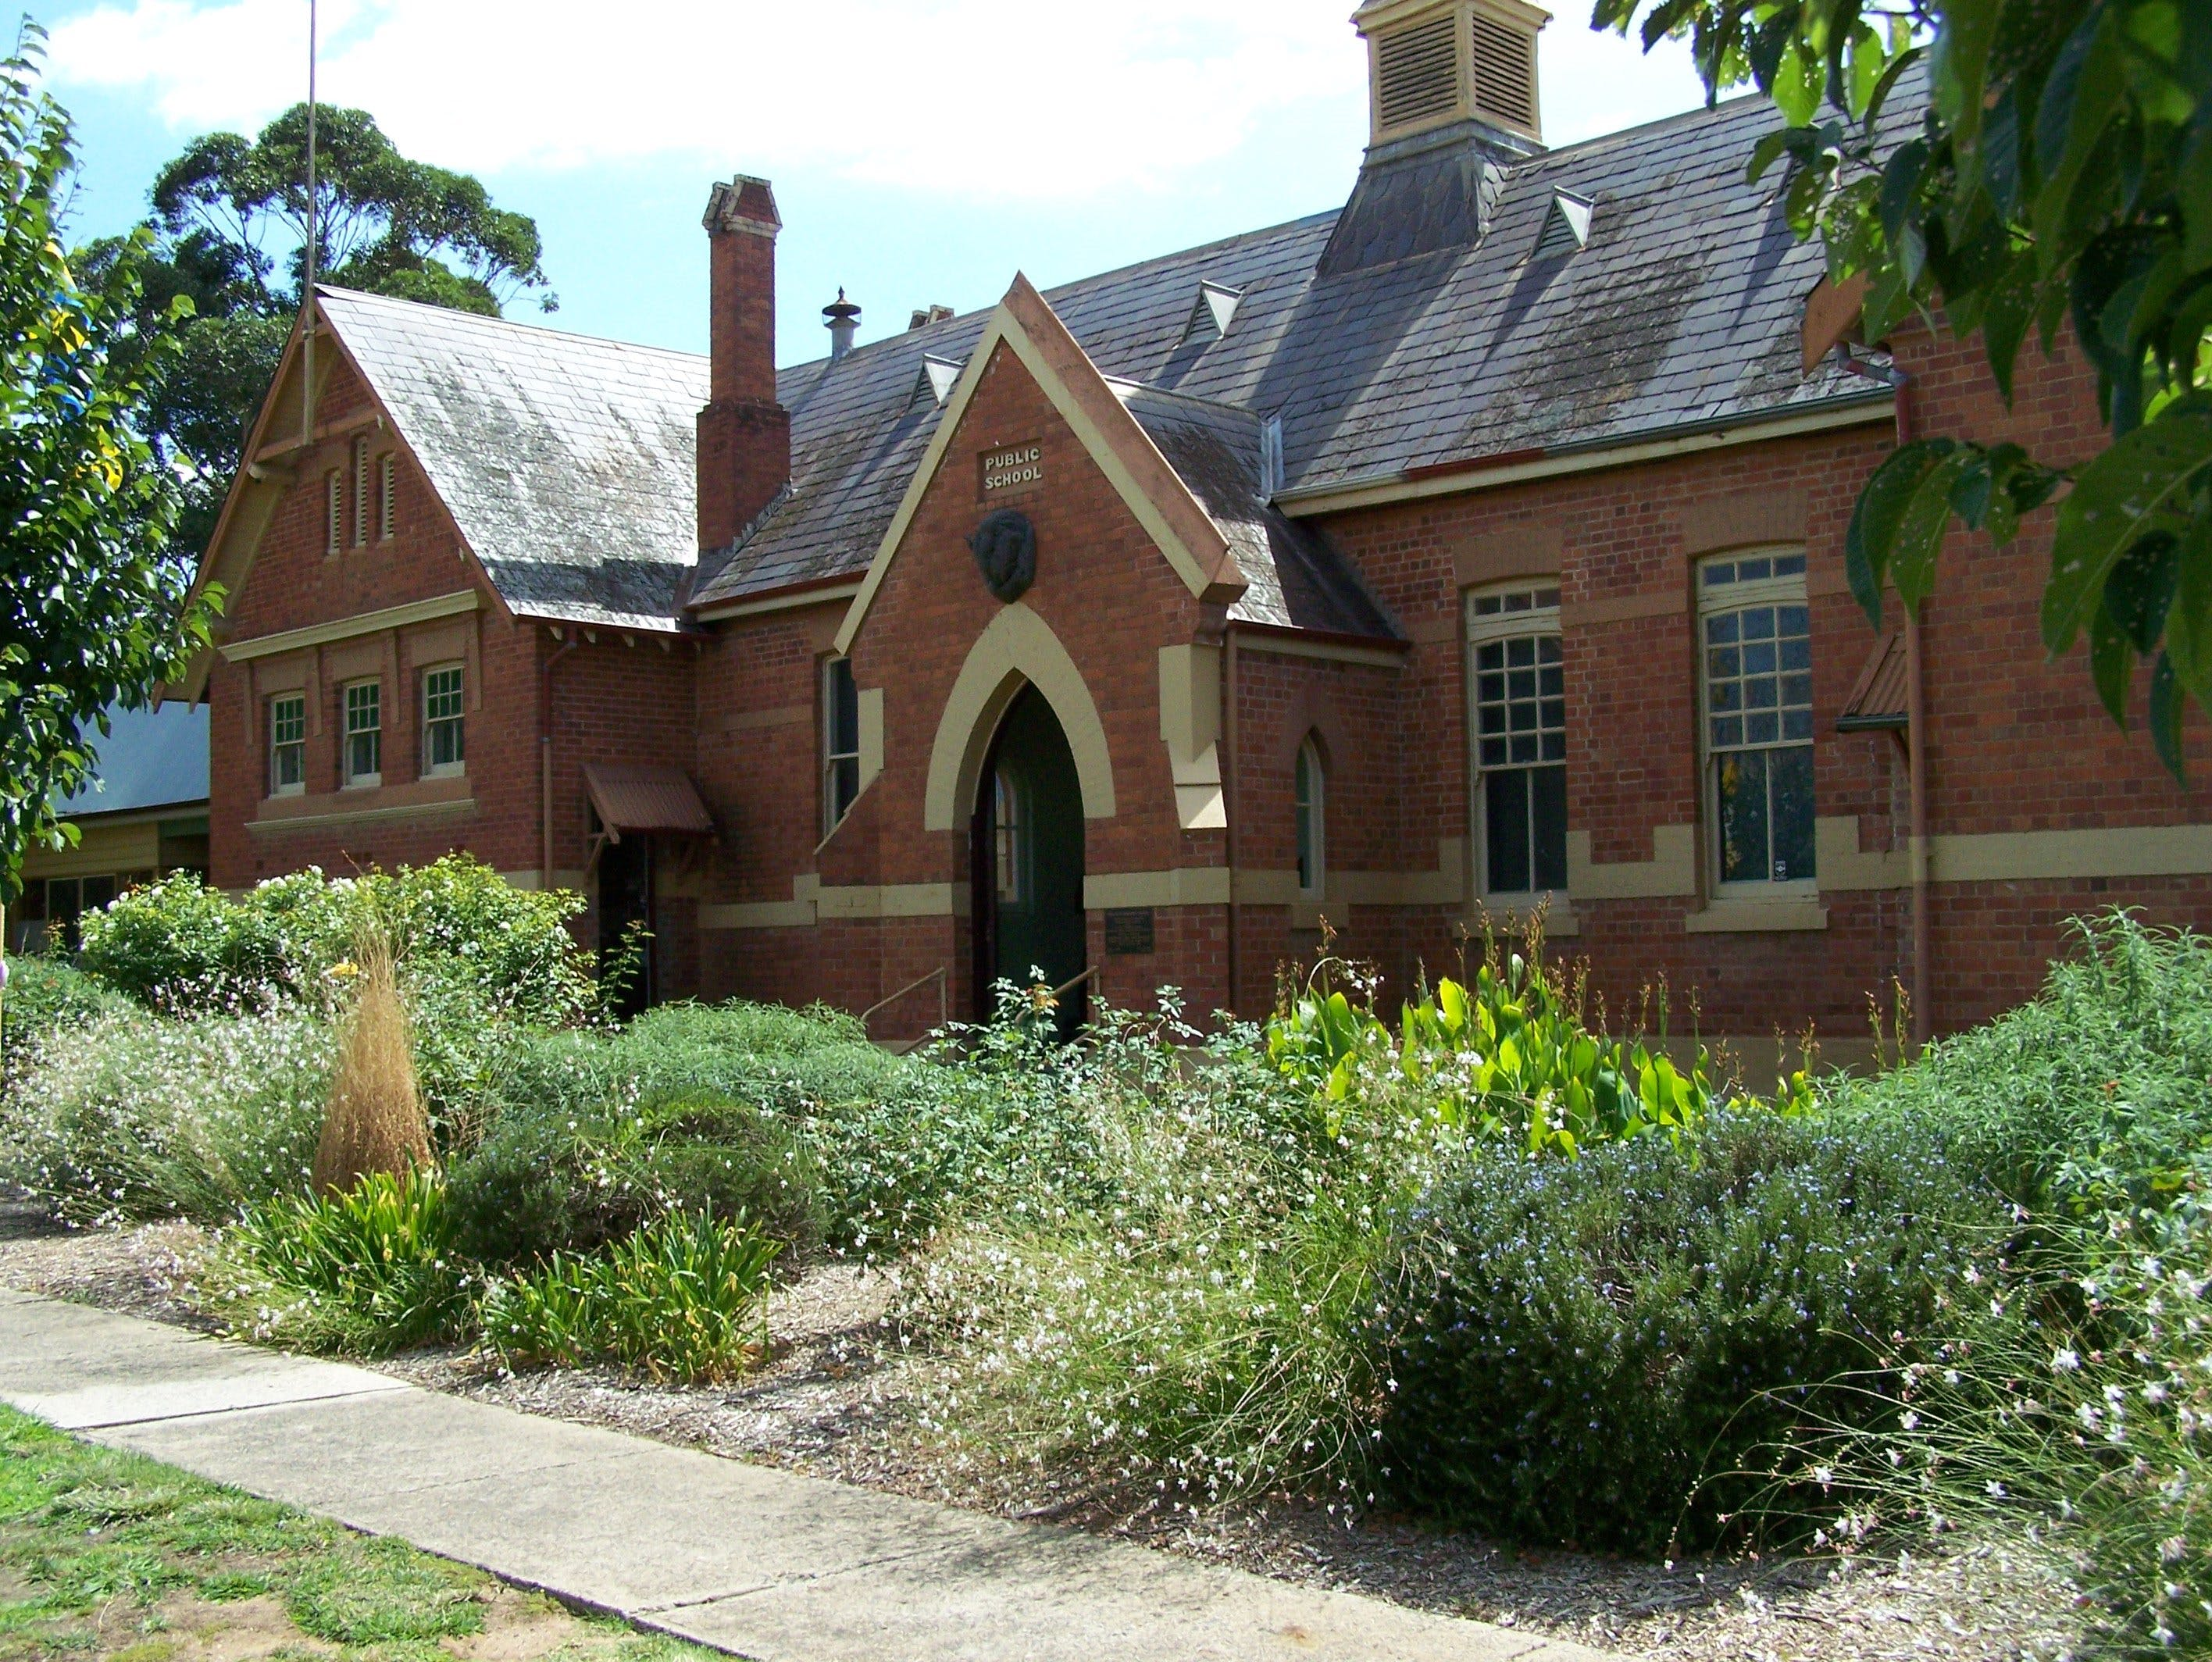 Peppin Heritage Centre - Wagga Wagga Accommodation